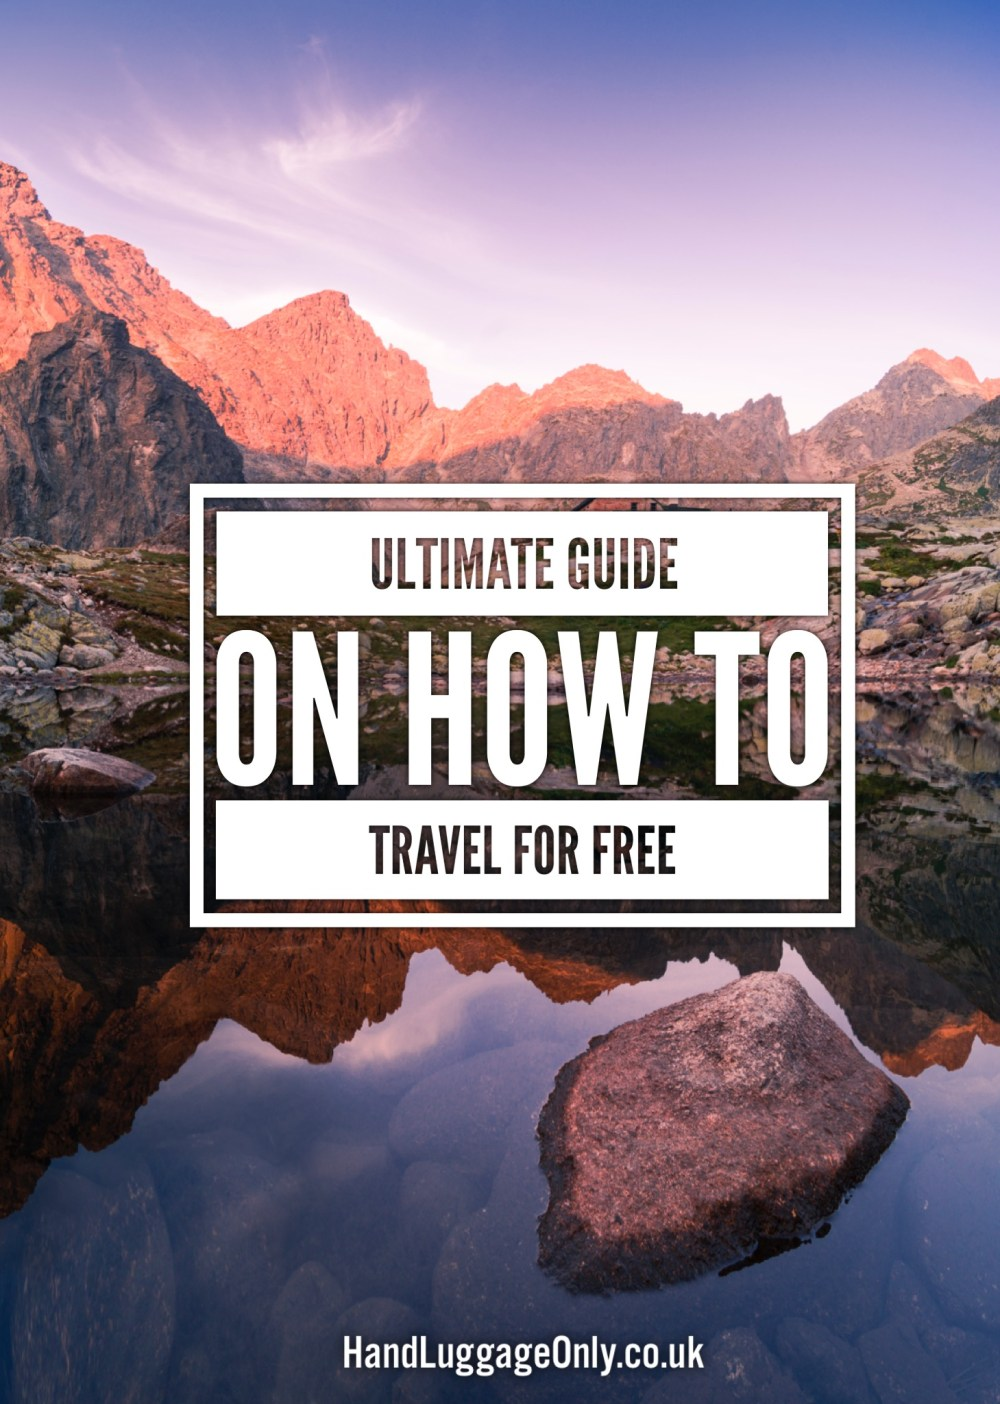 The Ultimate Guide On How To Travel For Free